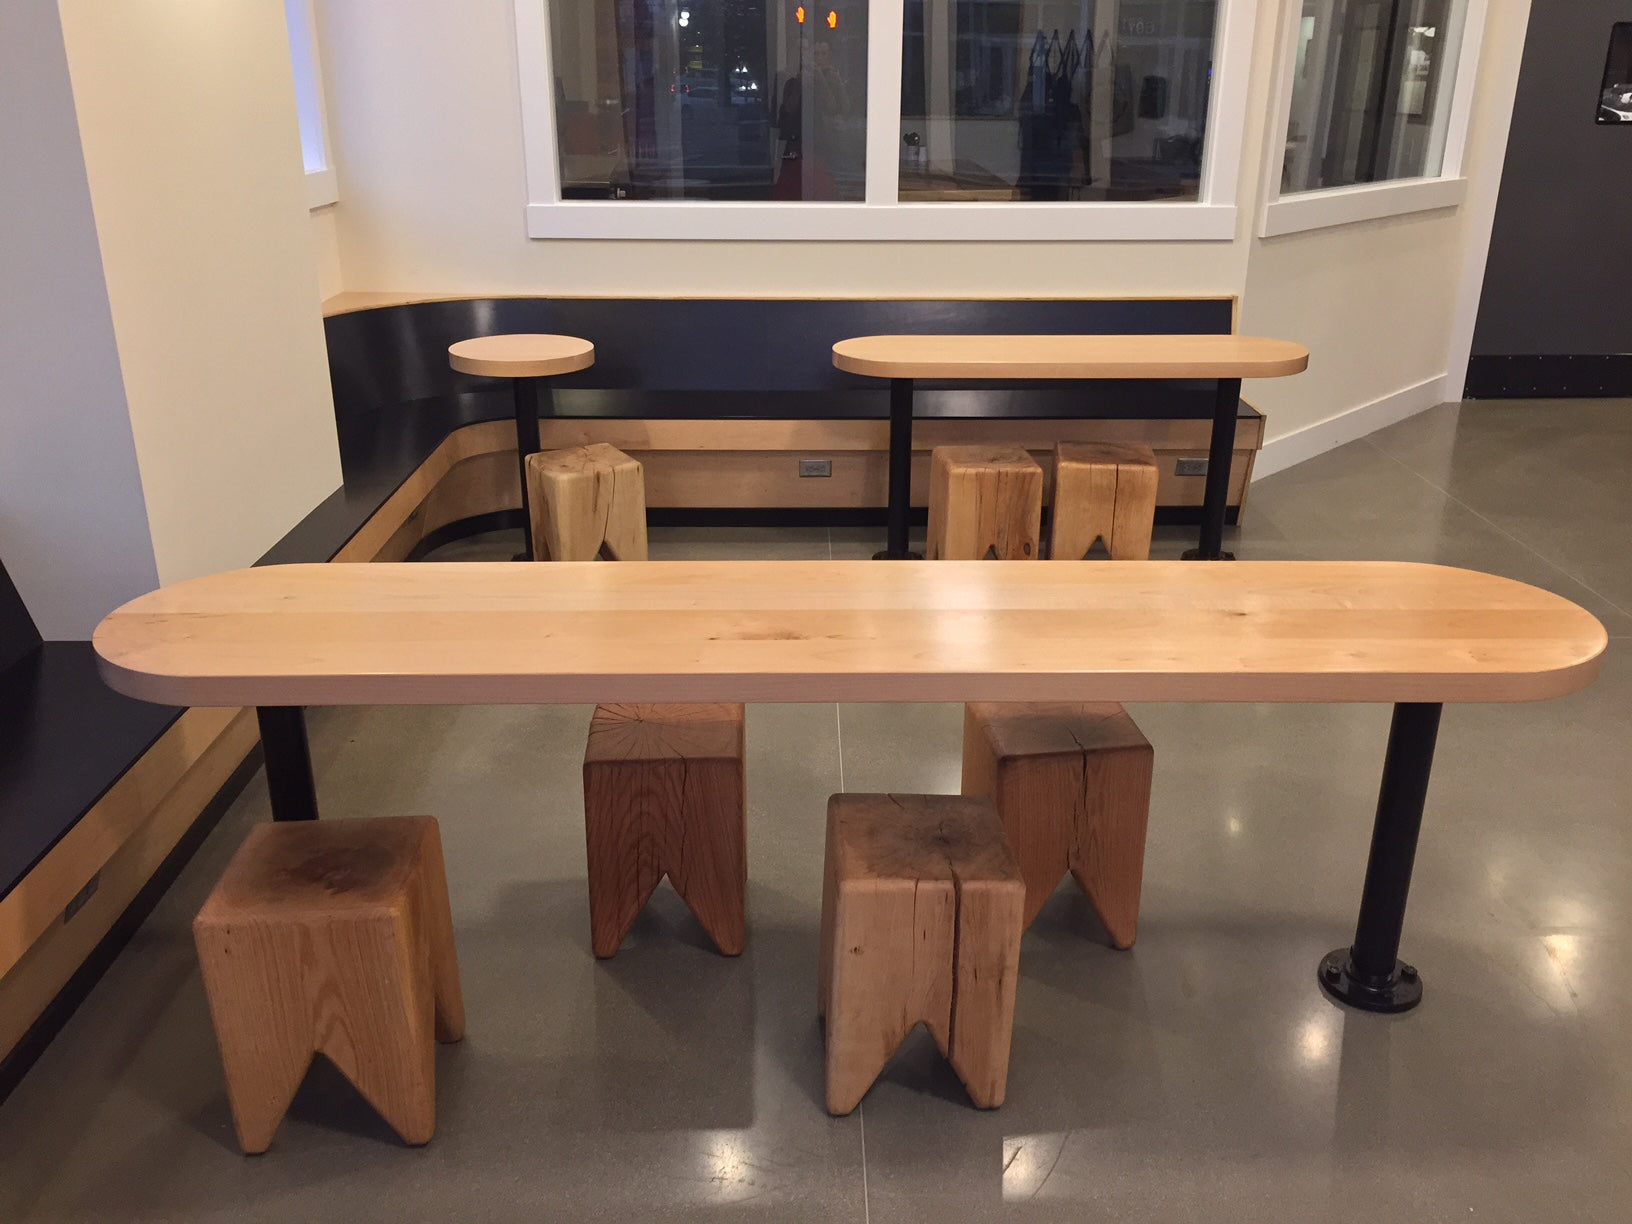 Western Maple tables | Olympia Coffee Roasters, Olympia, WA